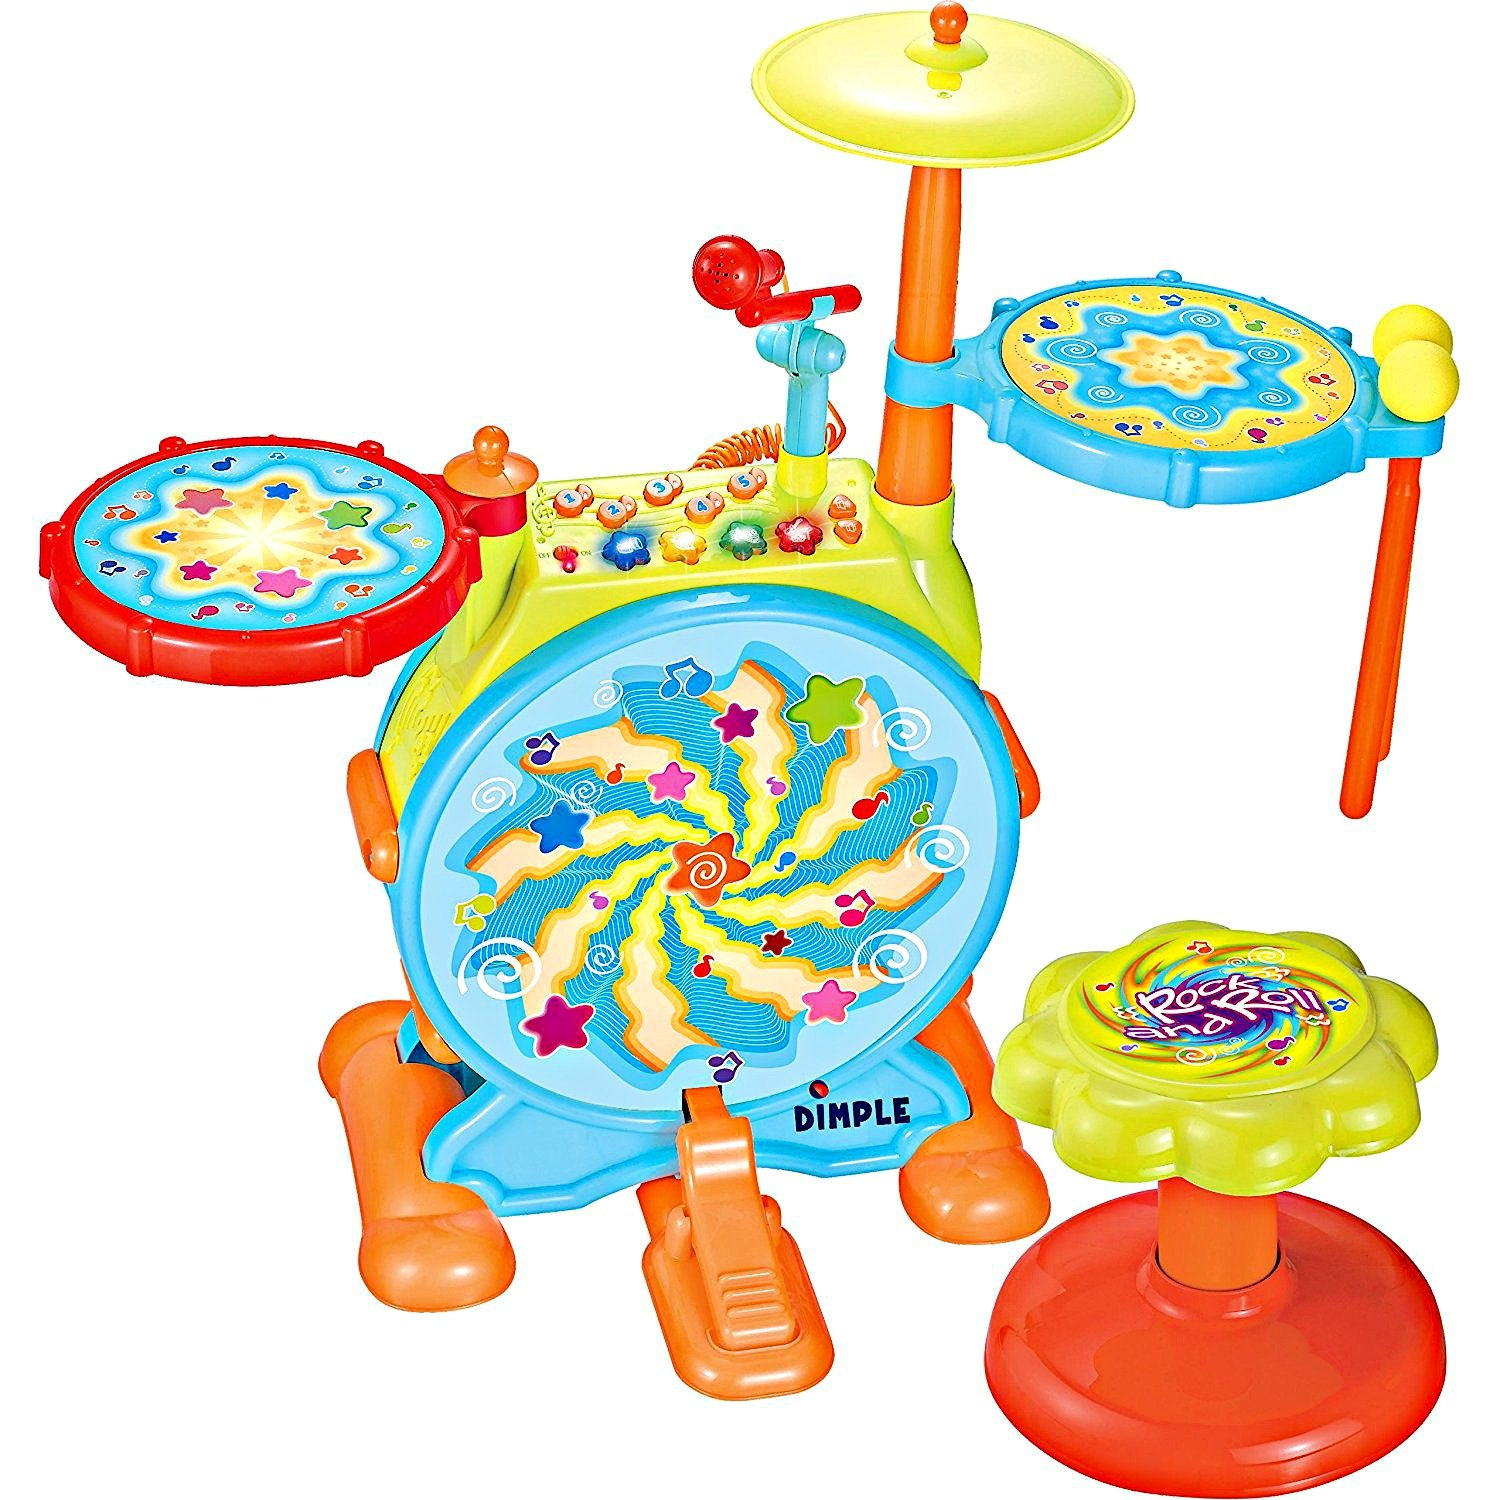 Dimple Electric Big Toy Drum Set for Kids with Movable Working Microphone to Sing and a Chair - Tons of Various Functions and Activity, Bass Drum and Pedal with Drum Sticks (Adjustable Volume) by Dimple